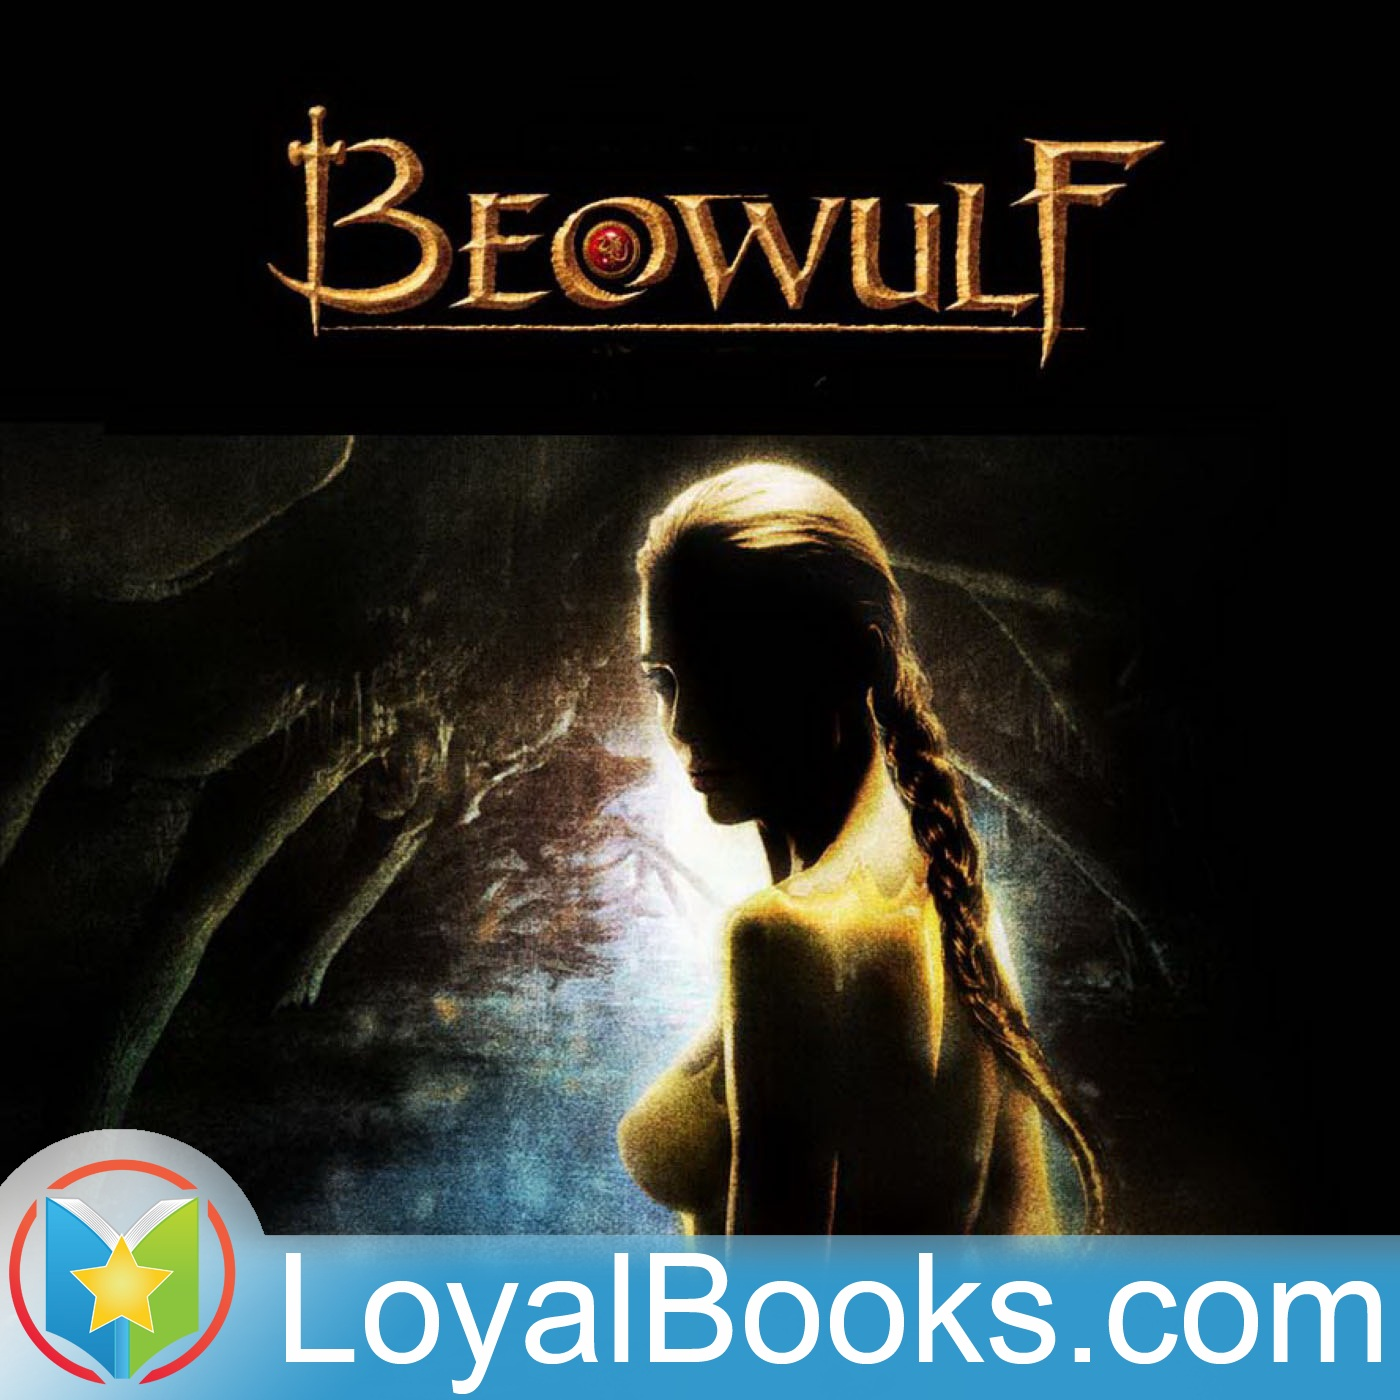 <![CDATA[Beowulf by Unknown]]>